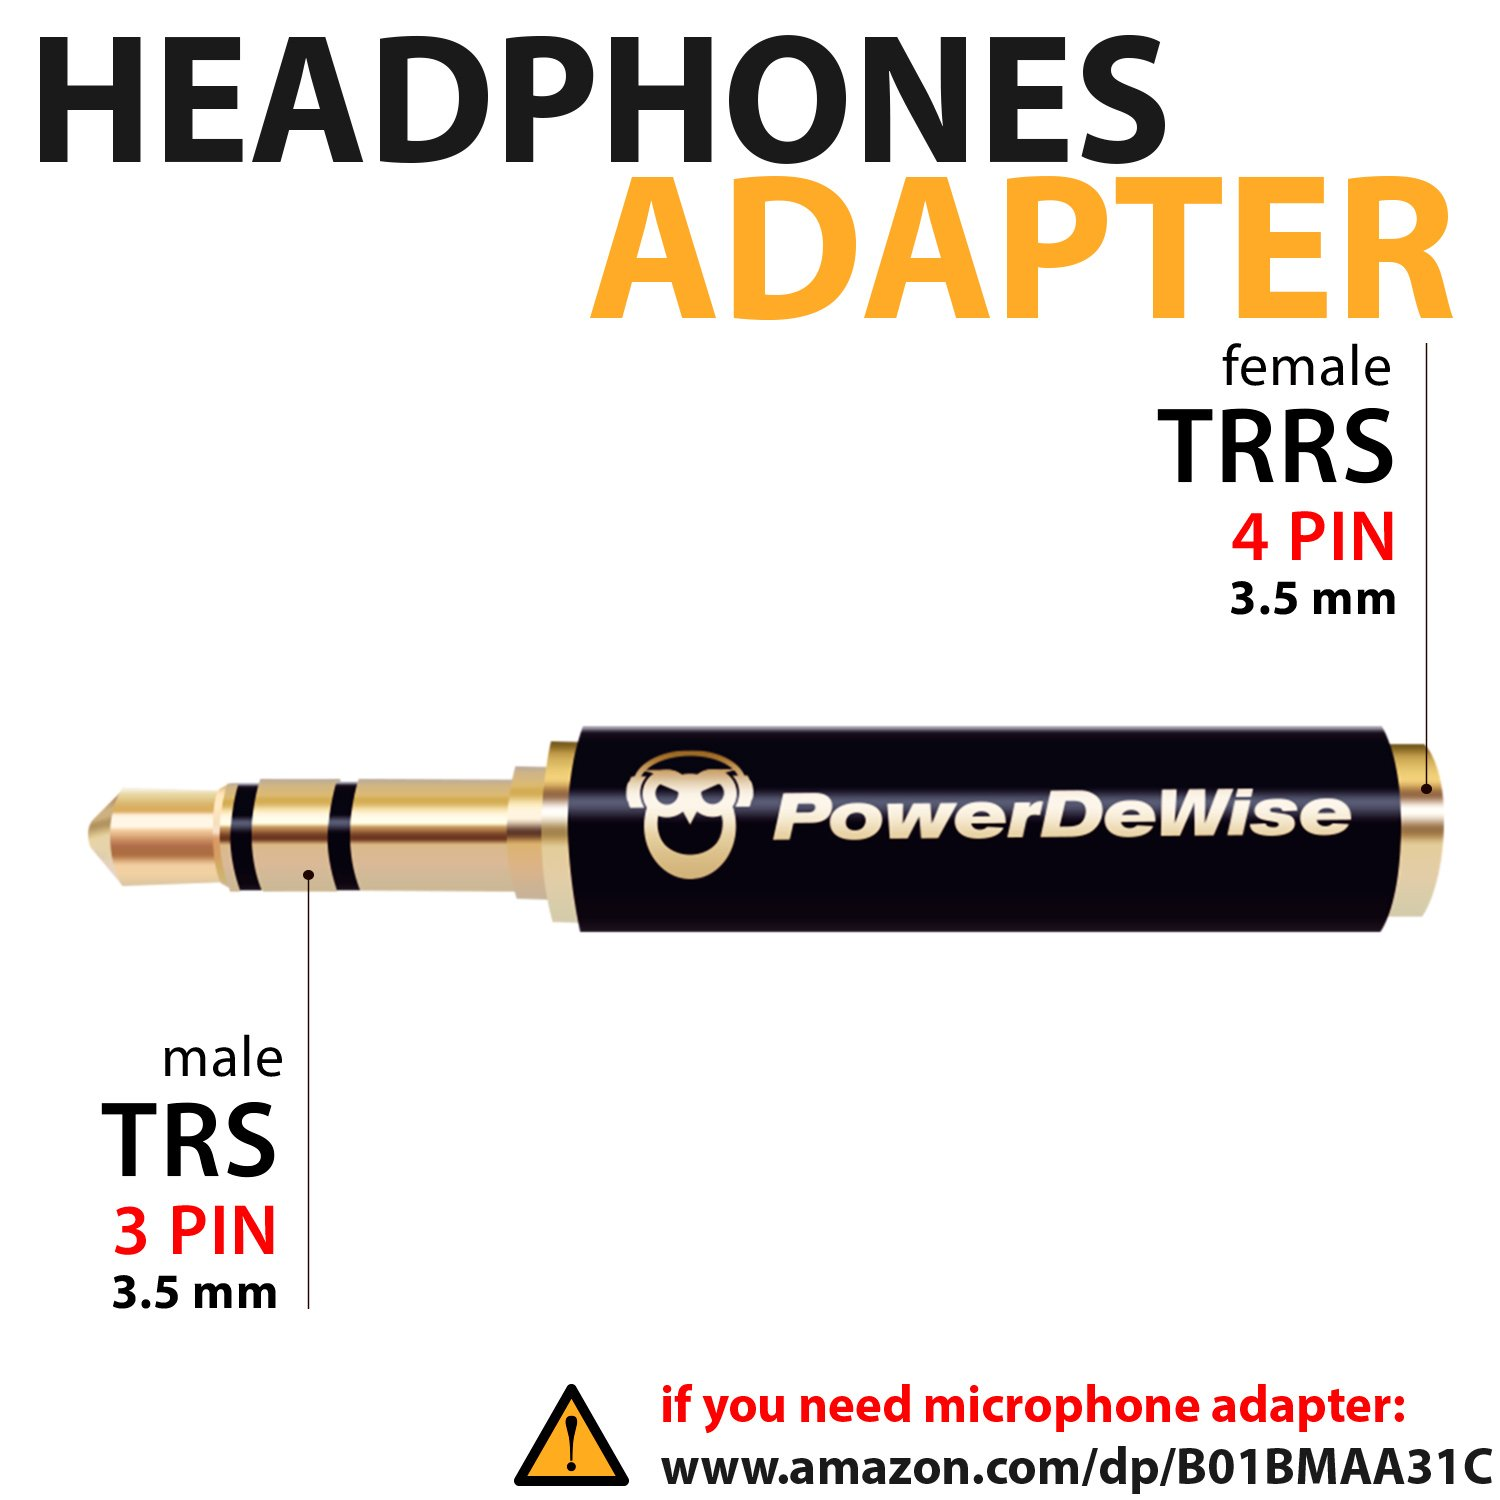 Headphone Adapter 35mm Trrs To Trs Headset Jack Wiring Diagram Free Picture Female Male